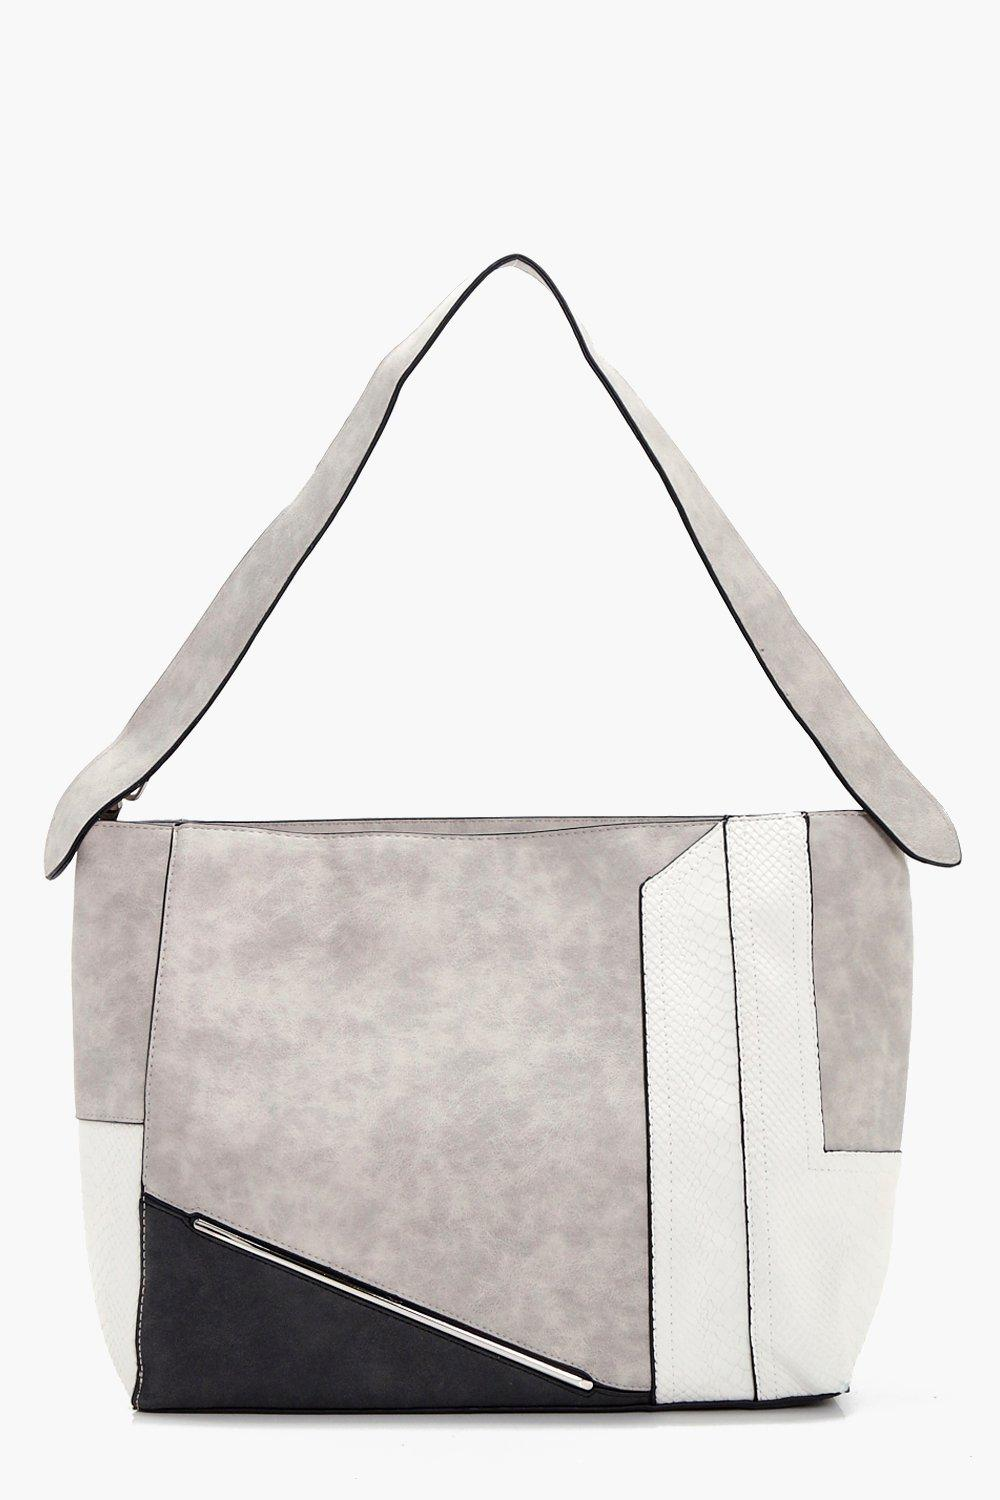 Multi Panel Tote - grey - Millie Multi Panel Tote